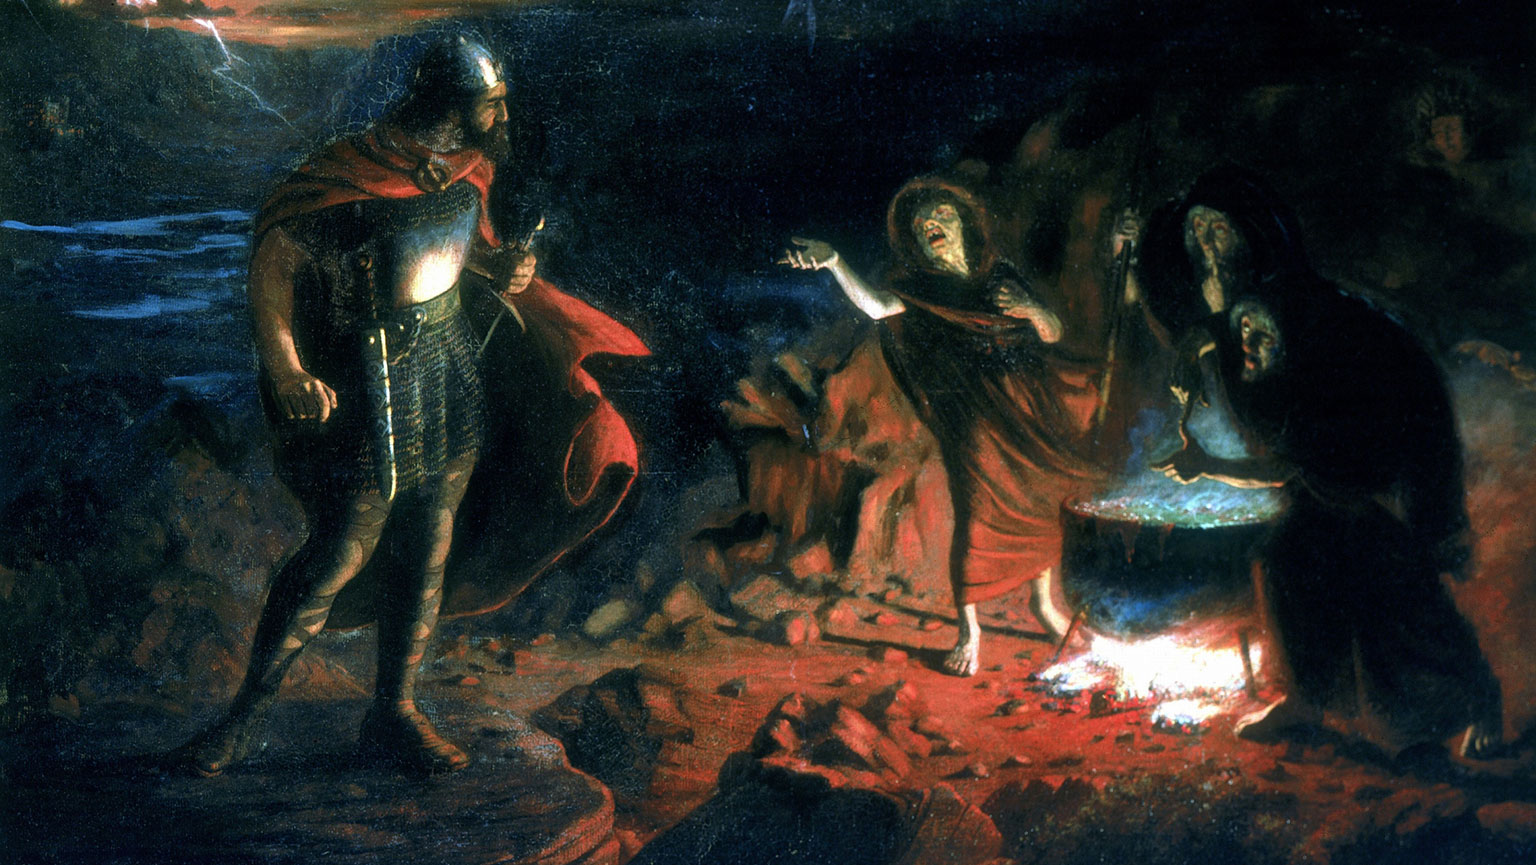 the consequences of disguising foul with fair in shakespeares macbeth Does the statement fair is foul, and foul is fair thoroughly expresses the many themes of shakespeare's 'macbeth' the first time we hear the statement is very early in the play when the witches say the exact line fair is foul, and foul is fair only for macbeth himself to repeat it very closely two scenes later.